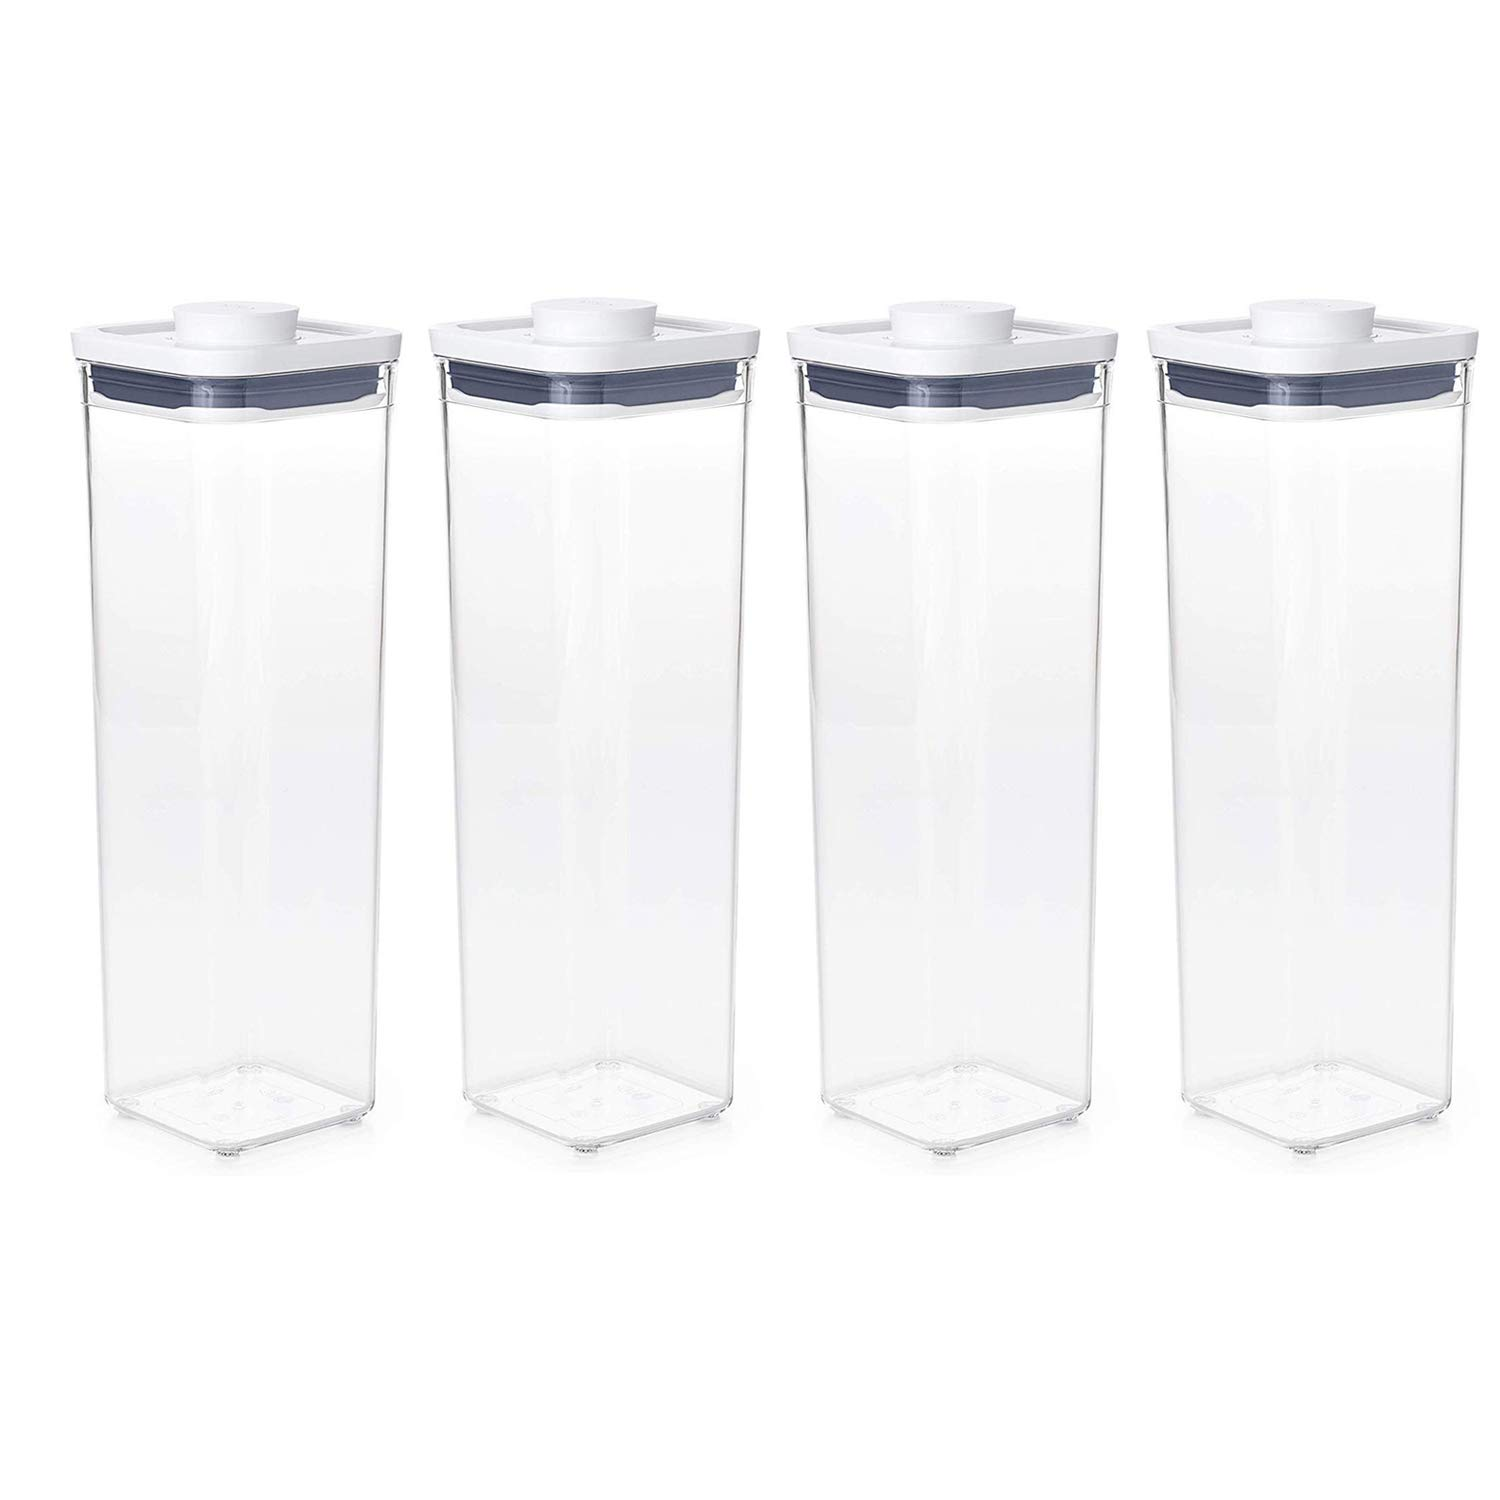 OXO Good Grips POP Container - Airtight Food Storage - 2.3 Qt Square (Set of 4) for Spaghetti and More